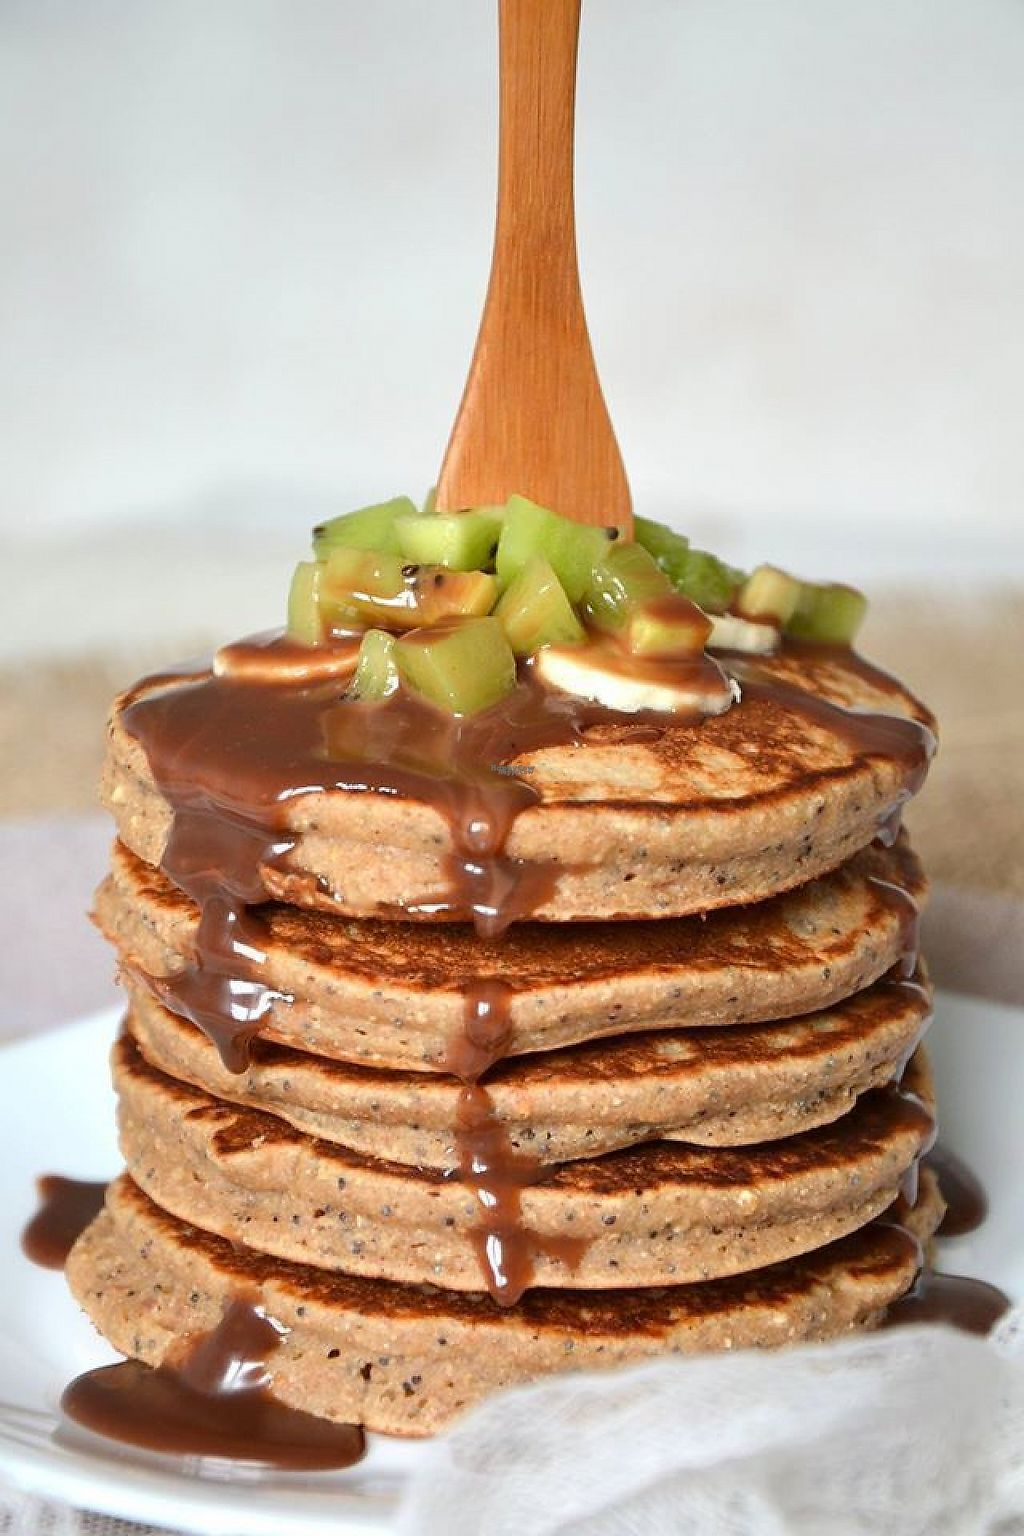 "Photo of La Vie Claire  by <a href=""/members/profile/community"">community</a> <br/>vegan pancakes  <br/> February 4, 2017  - <a href='/contact/abuse/image/68796/221840'>Report</a>"